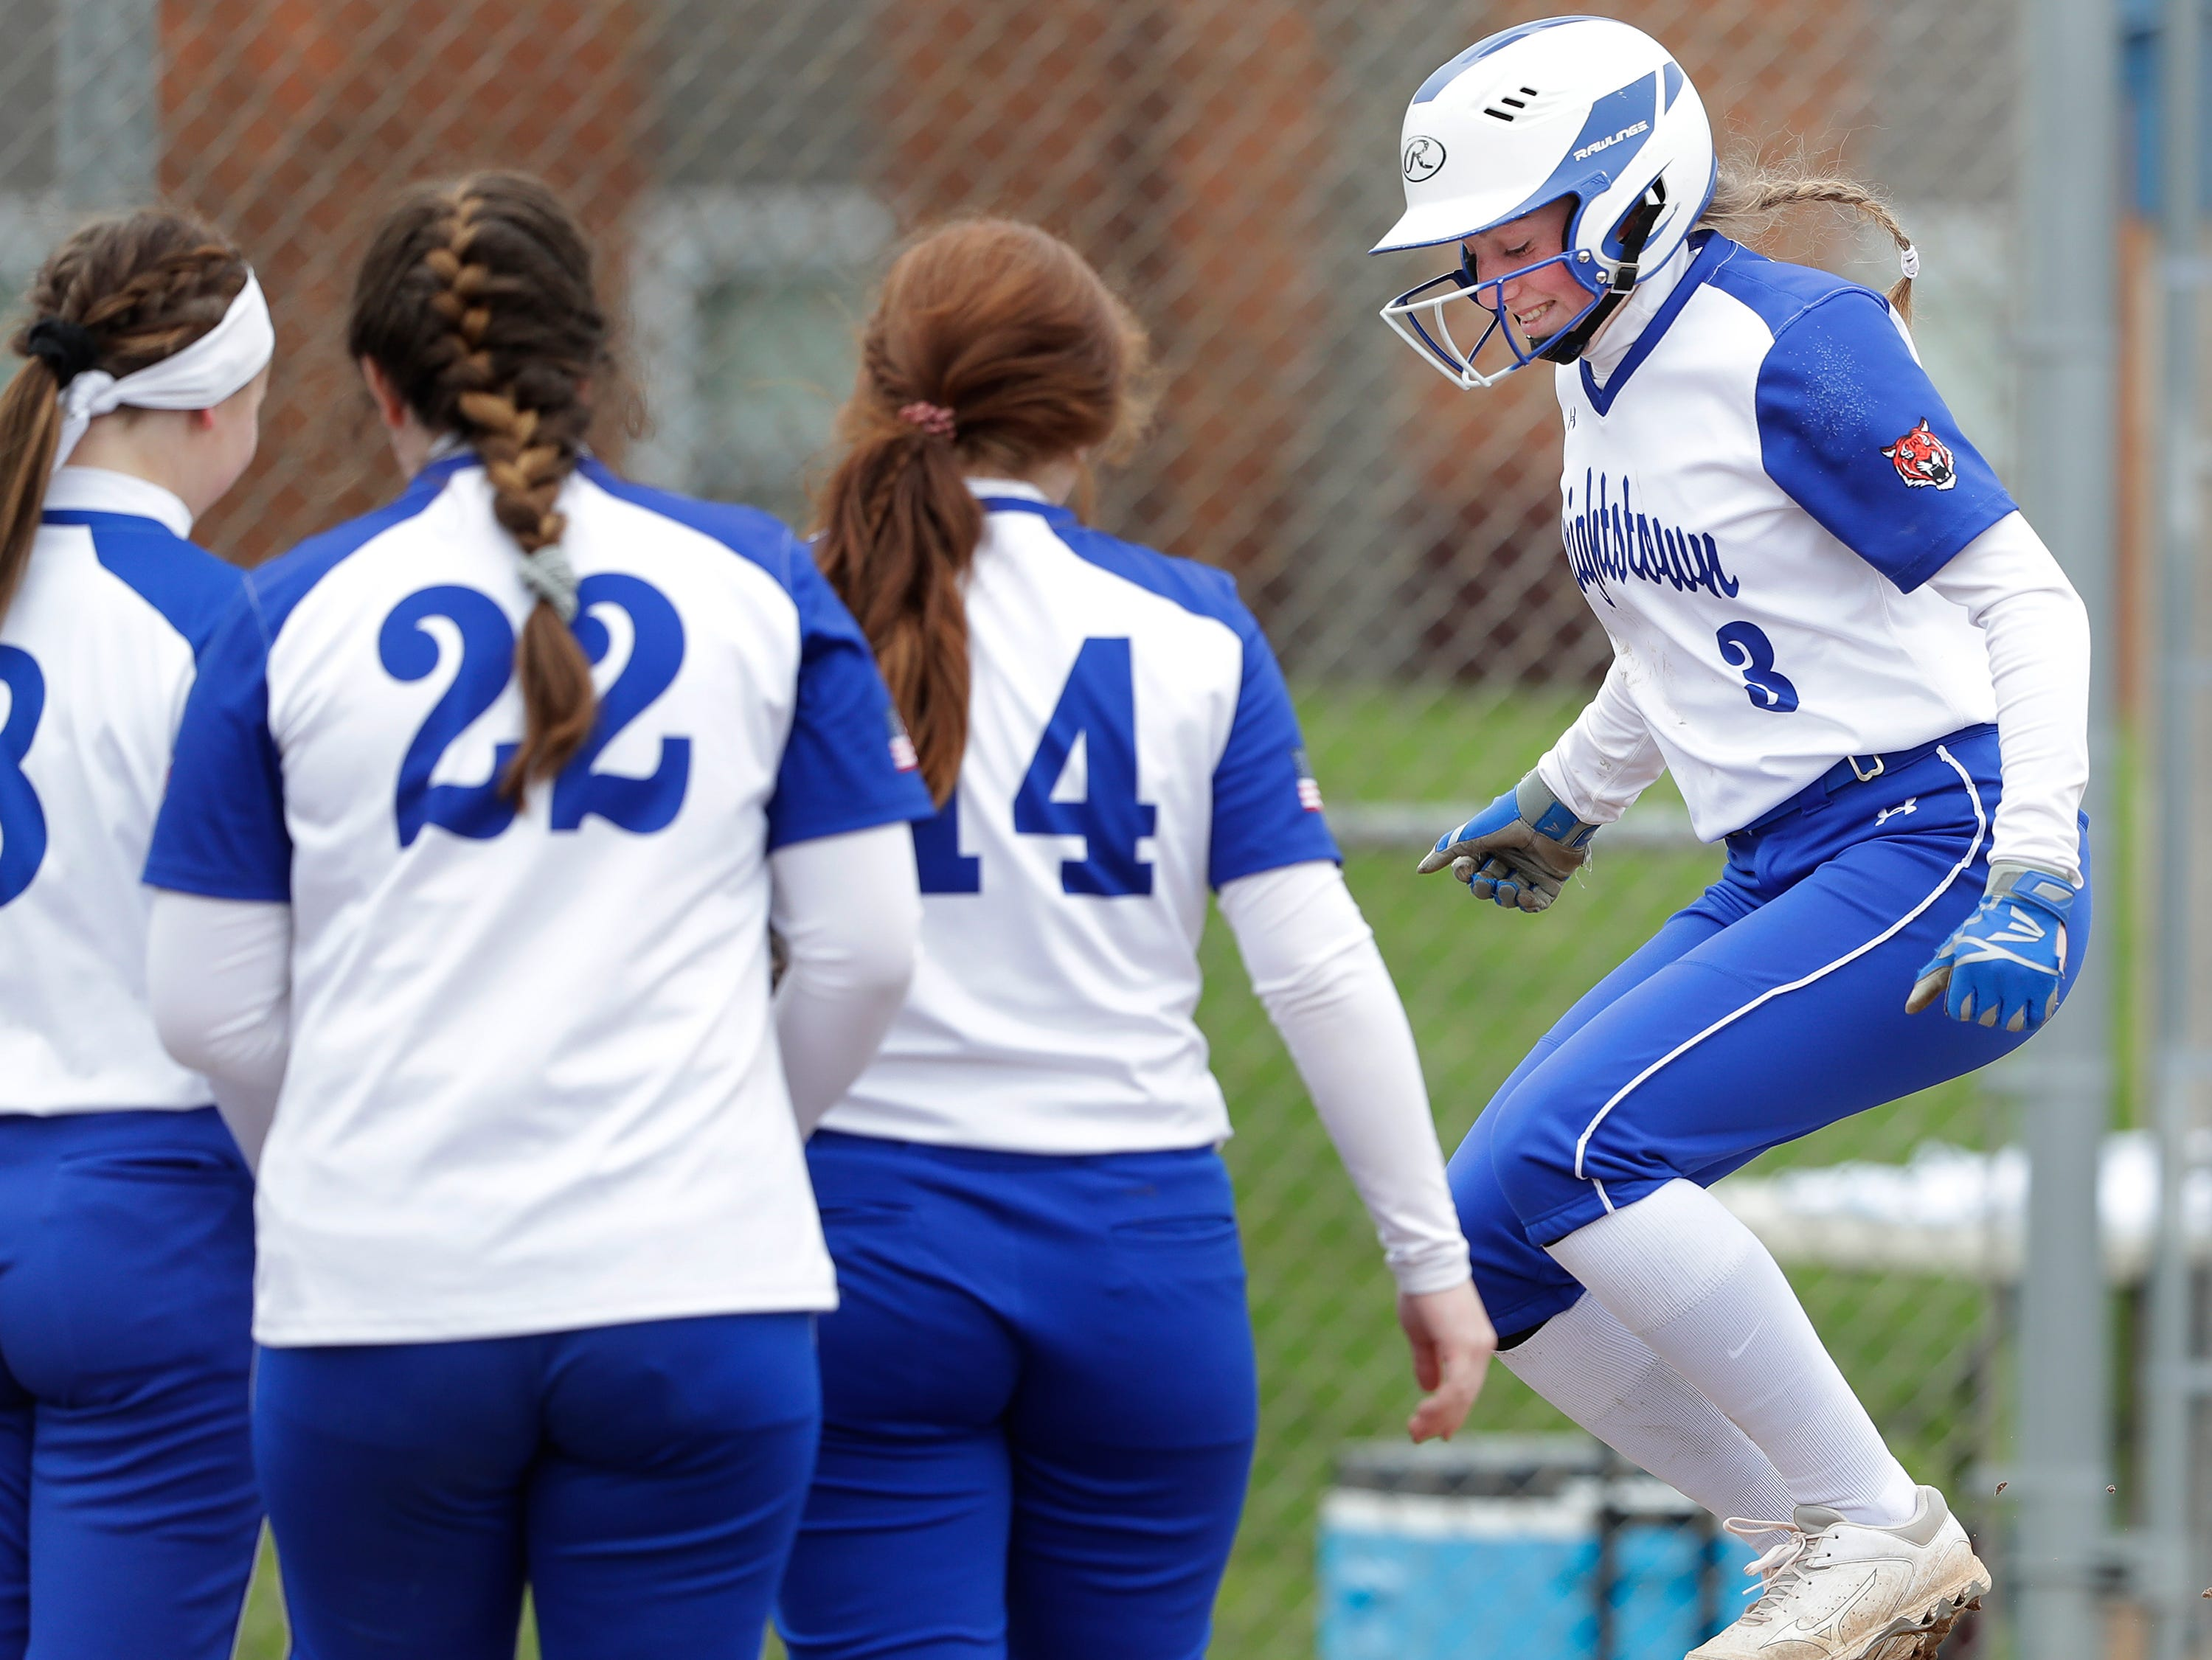 Wrightstown High School's #3 Elizabeth Langlois crosses the plate after hitting a homerun against Little Chute High School during their softball game on Friday, May 3, 2019, in Little Chute, Wis. Little Chute defeated Wrightstown 6 to 1.Wm. Glasheen/USA TODAY NETWORK-Wisconsin.